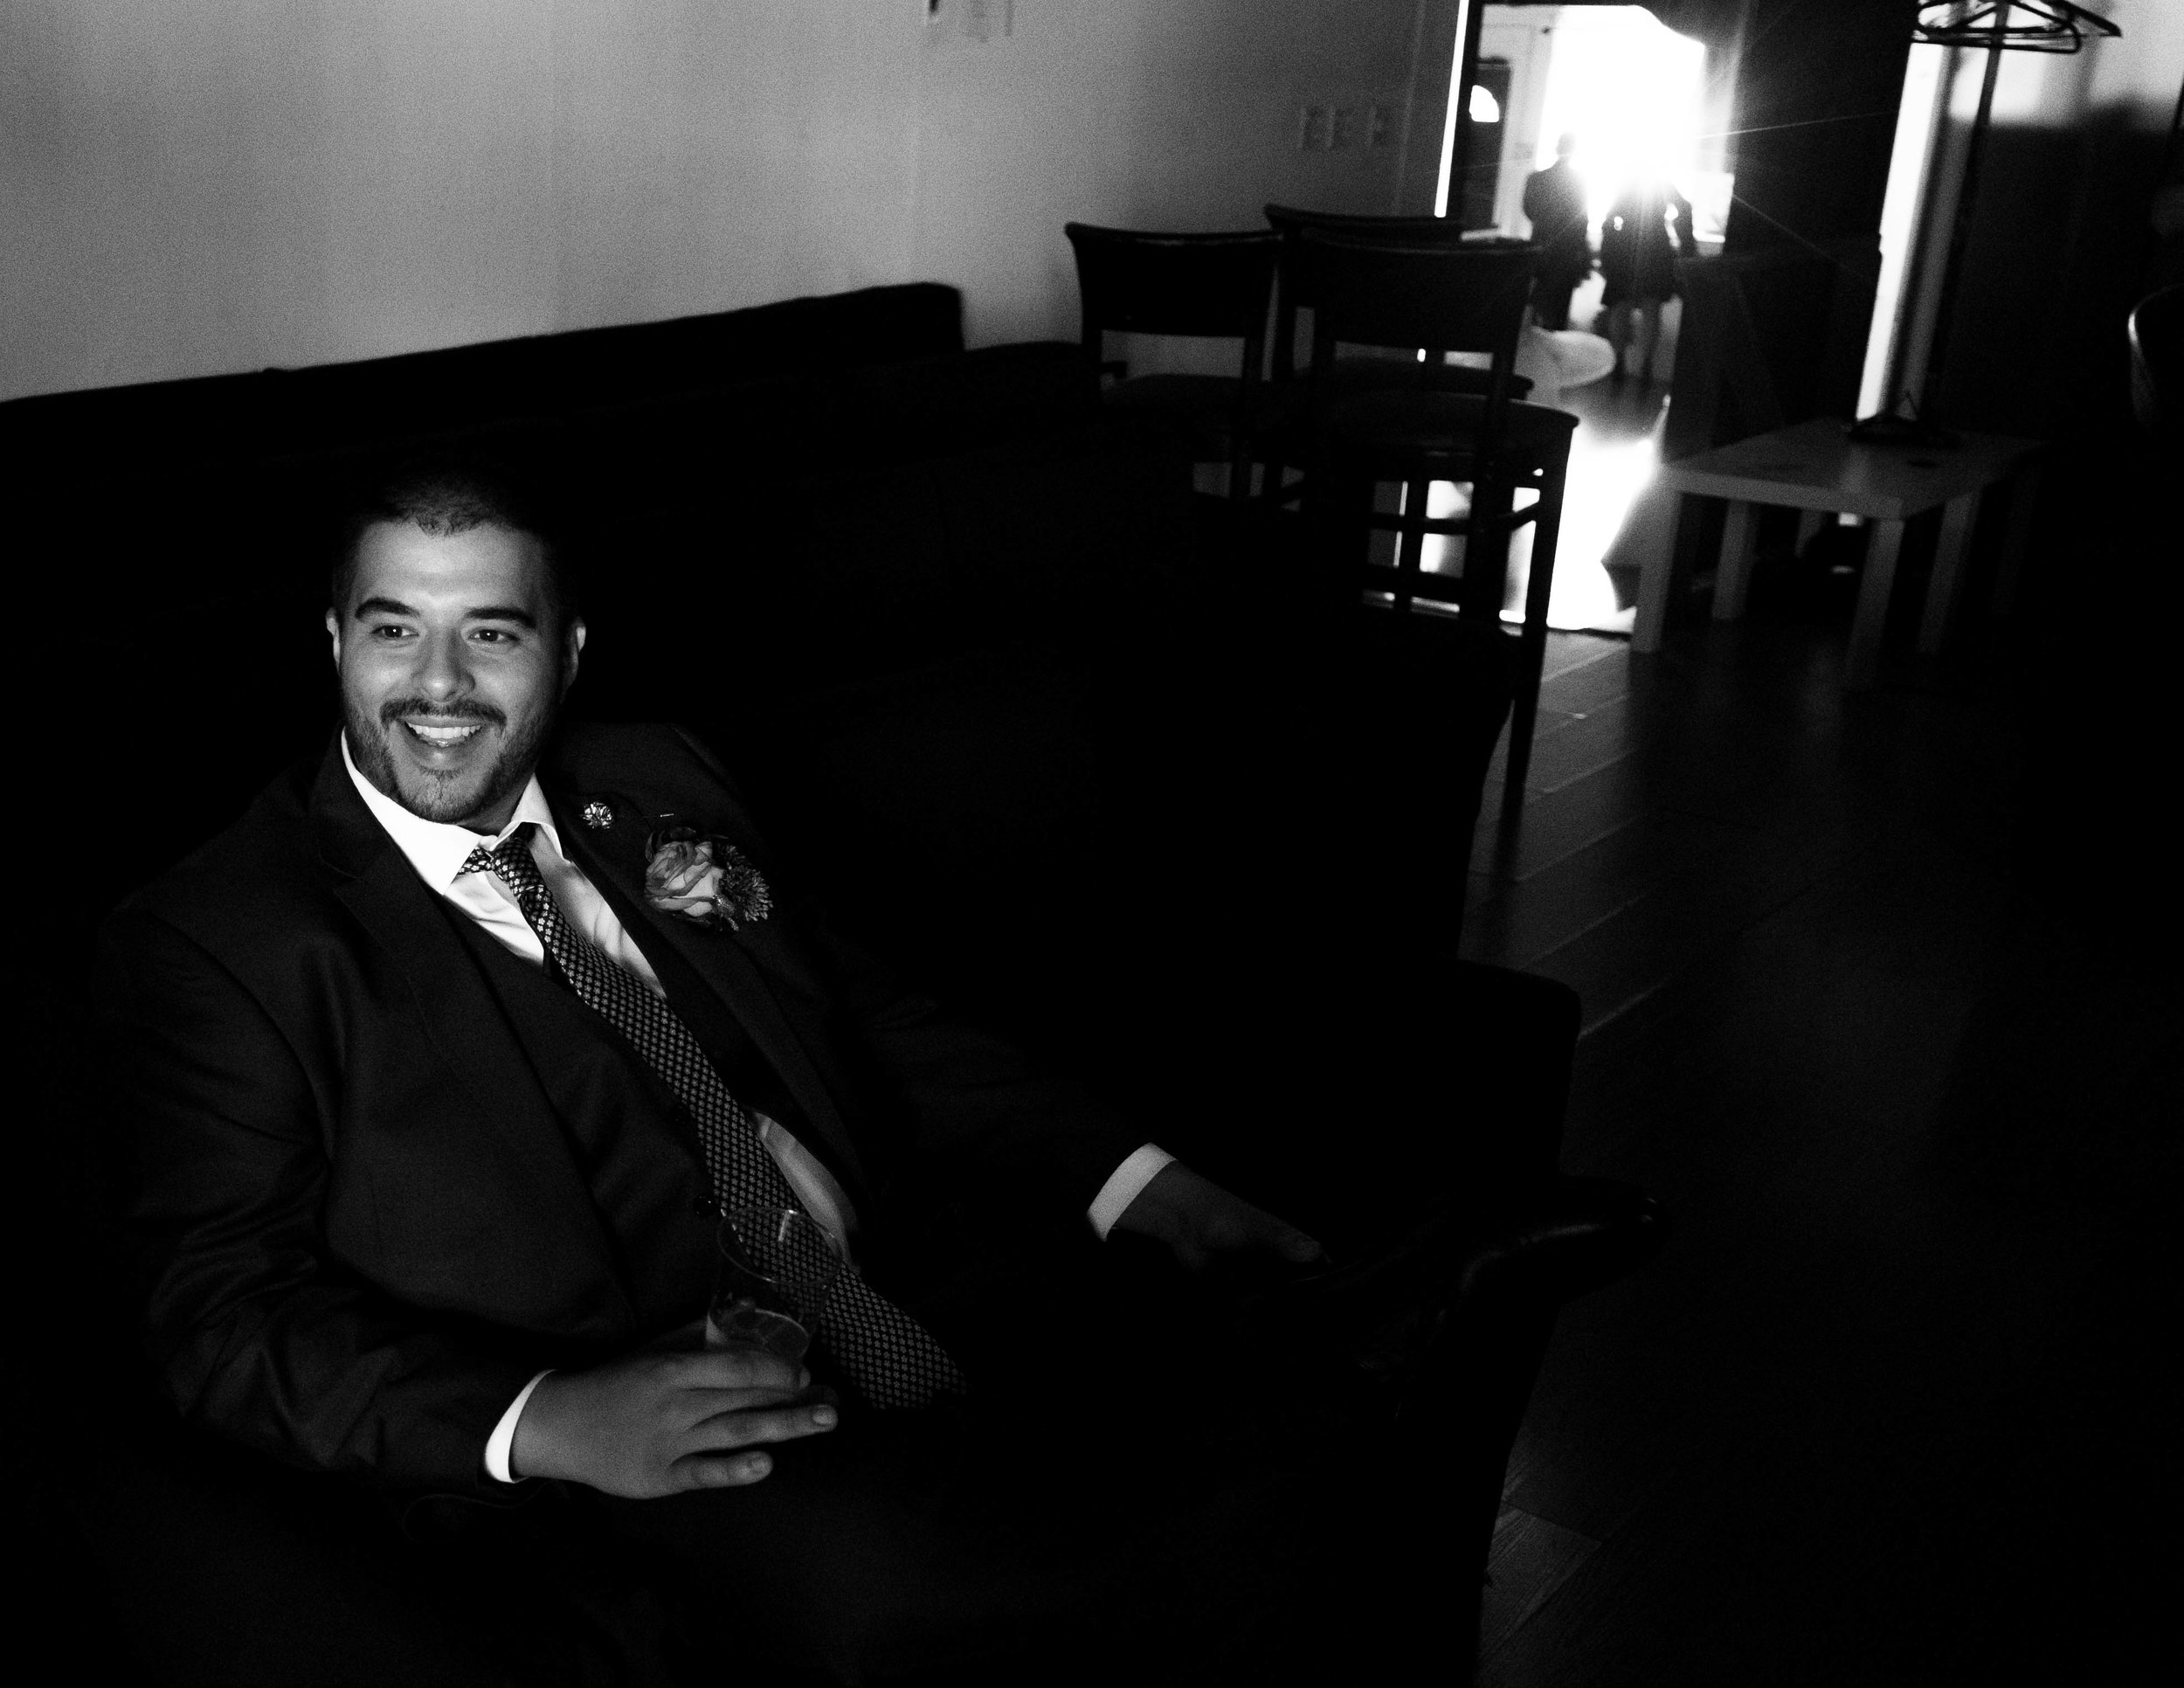 Groom relaxes and jokes